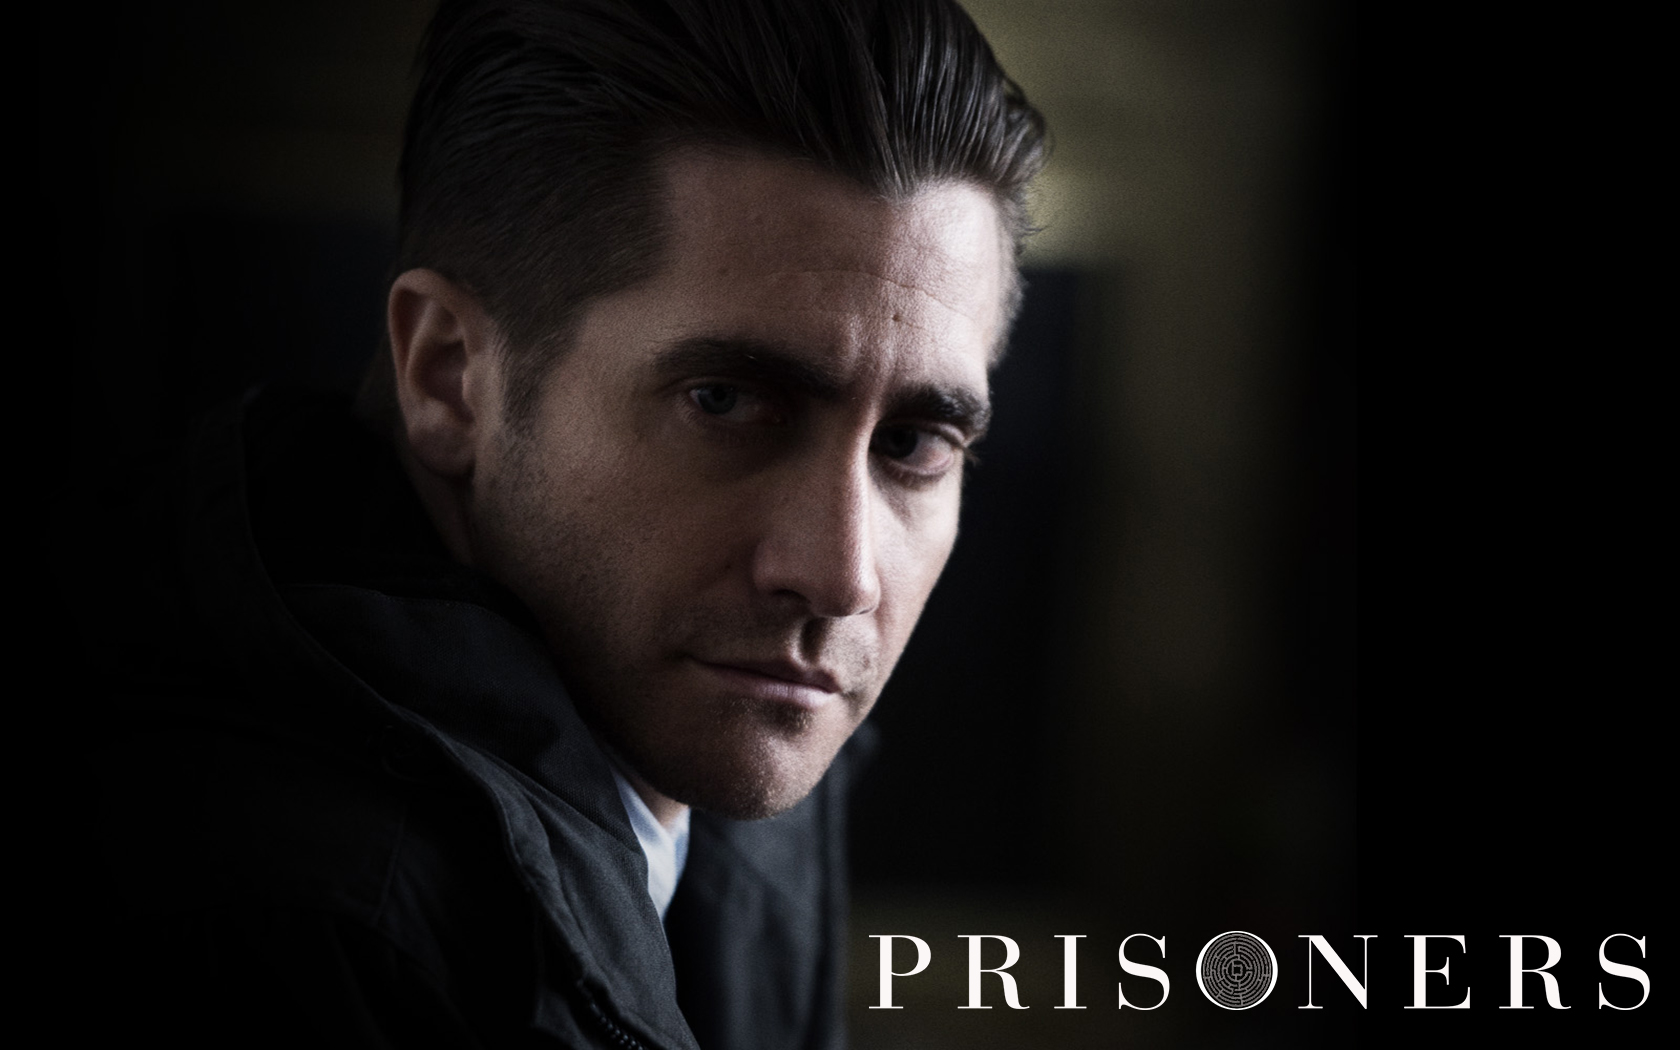 Jake Gyllenhaal Prisoners HD Wallpaper Background Images 1680x1050